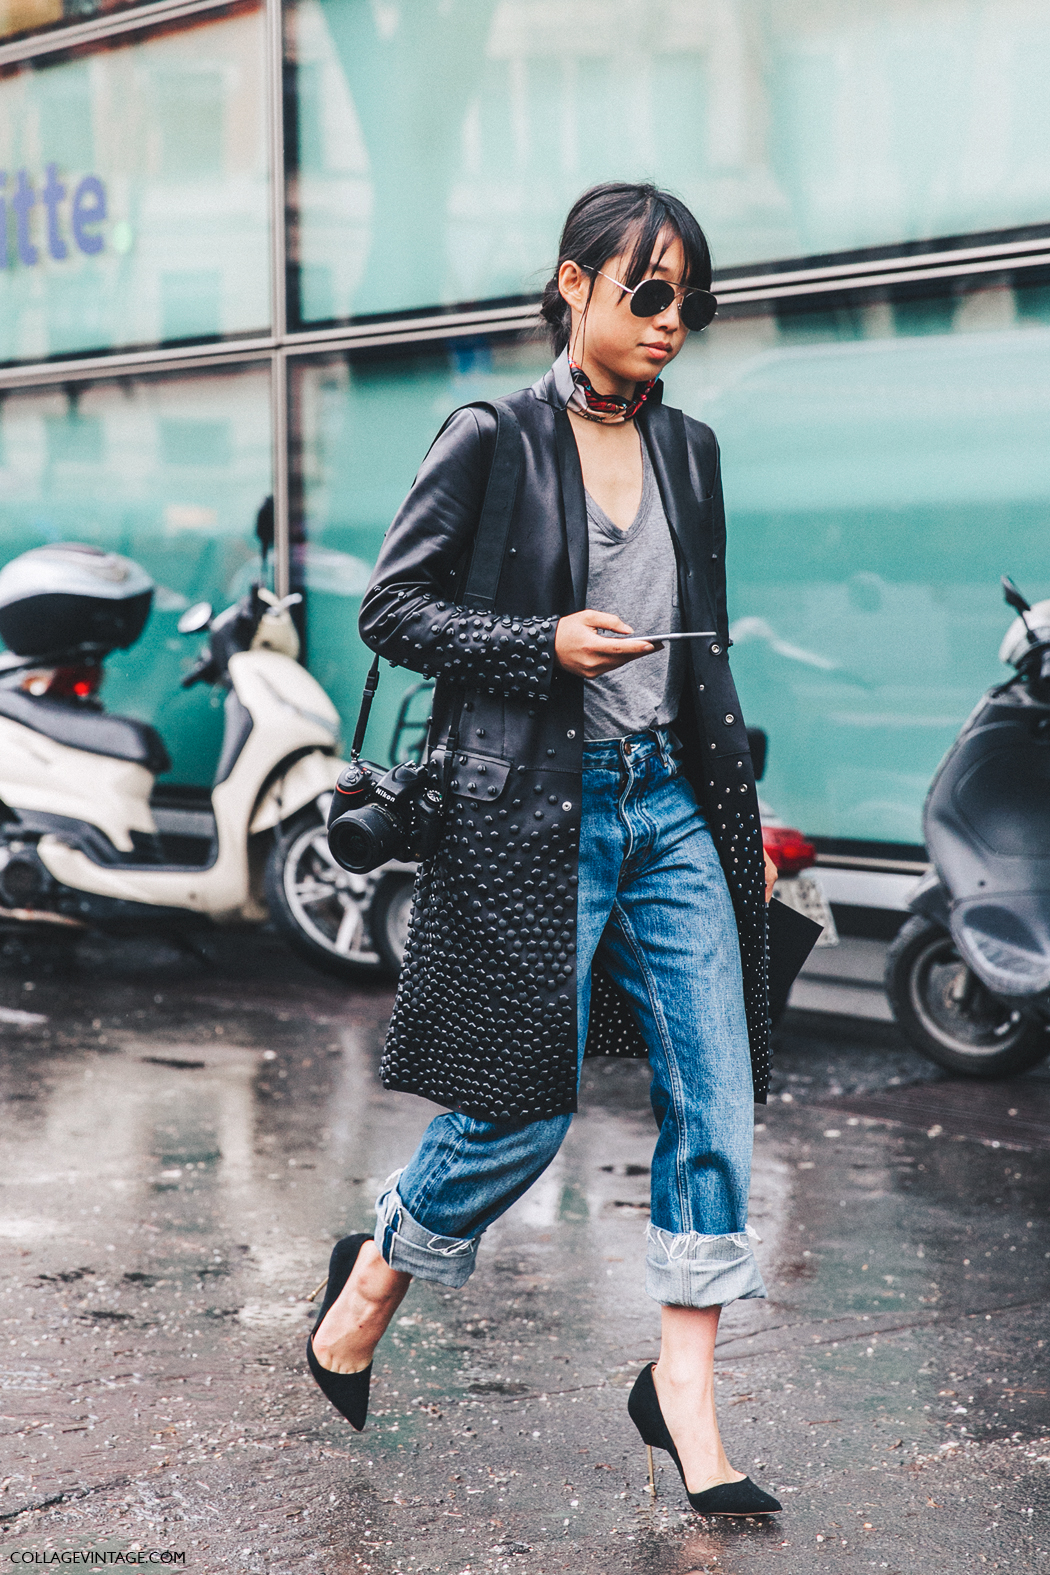 Milan_Fashion_Week_Fall_16-MFW-Street_Style-Collage_Vintage-Margaret_Zhang-LEanther_Coat-Jeans-